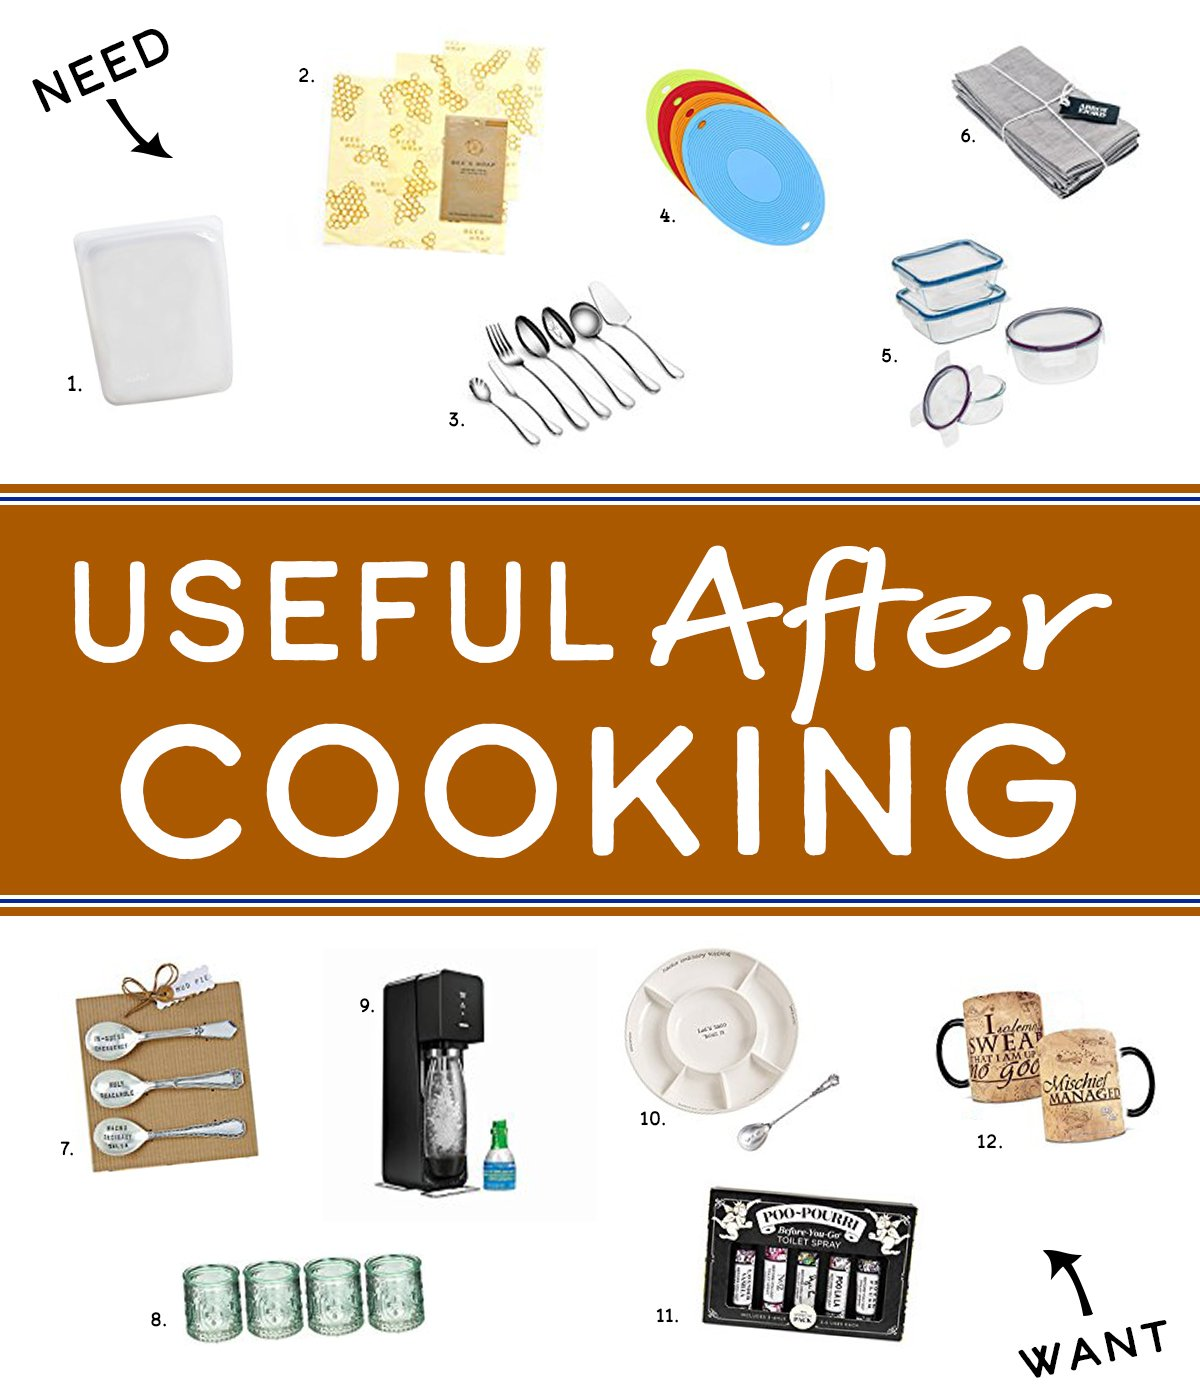 Holiday Gift Guide for the Home Cook - Find useful things home cooks love and use every day in this year's Holiday Gift Guide for the Home Cook! Here are Useful Gift Ideas for After Cooking!